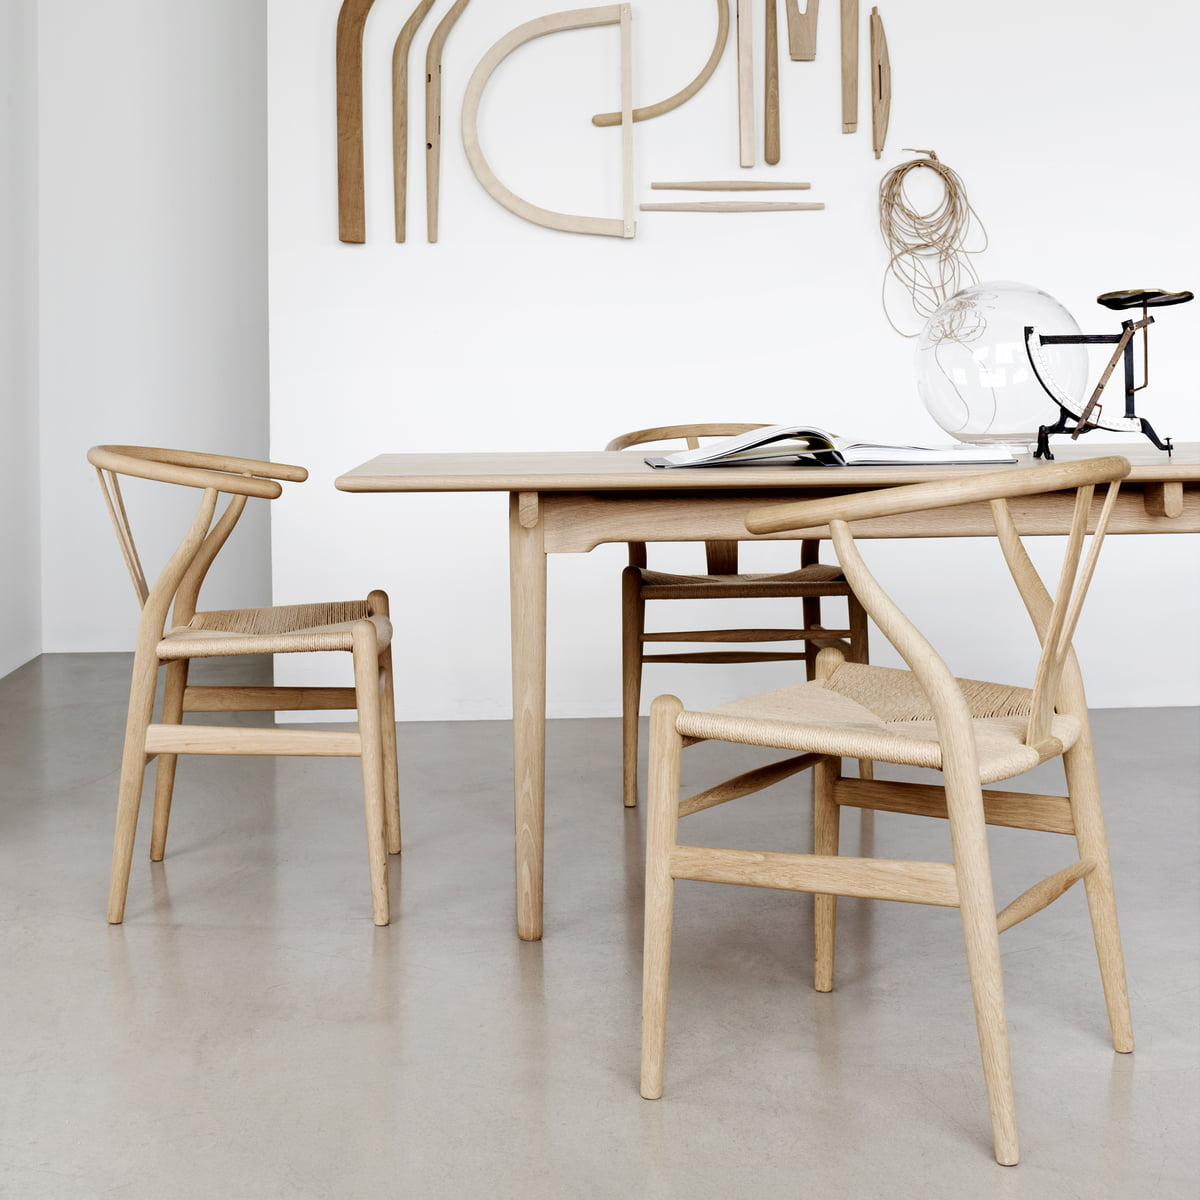 Attraktiv CH24 Wishbone Chair Von Carl Hansen